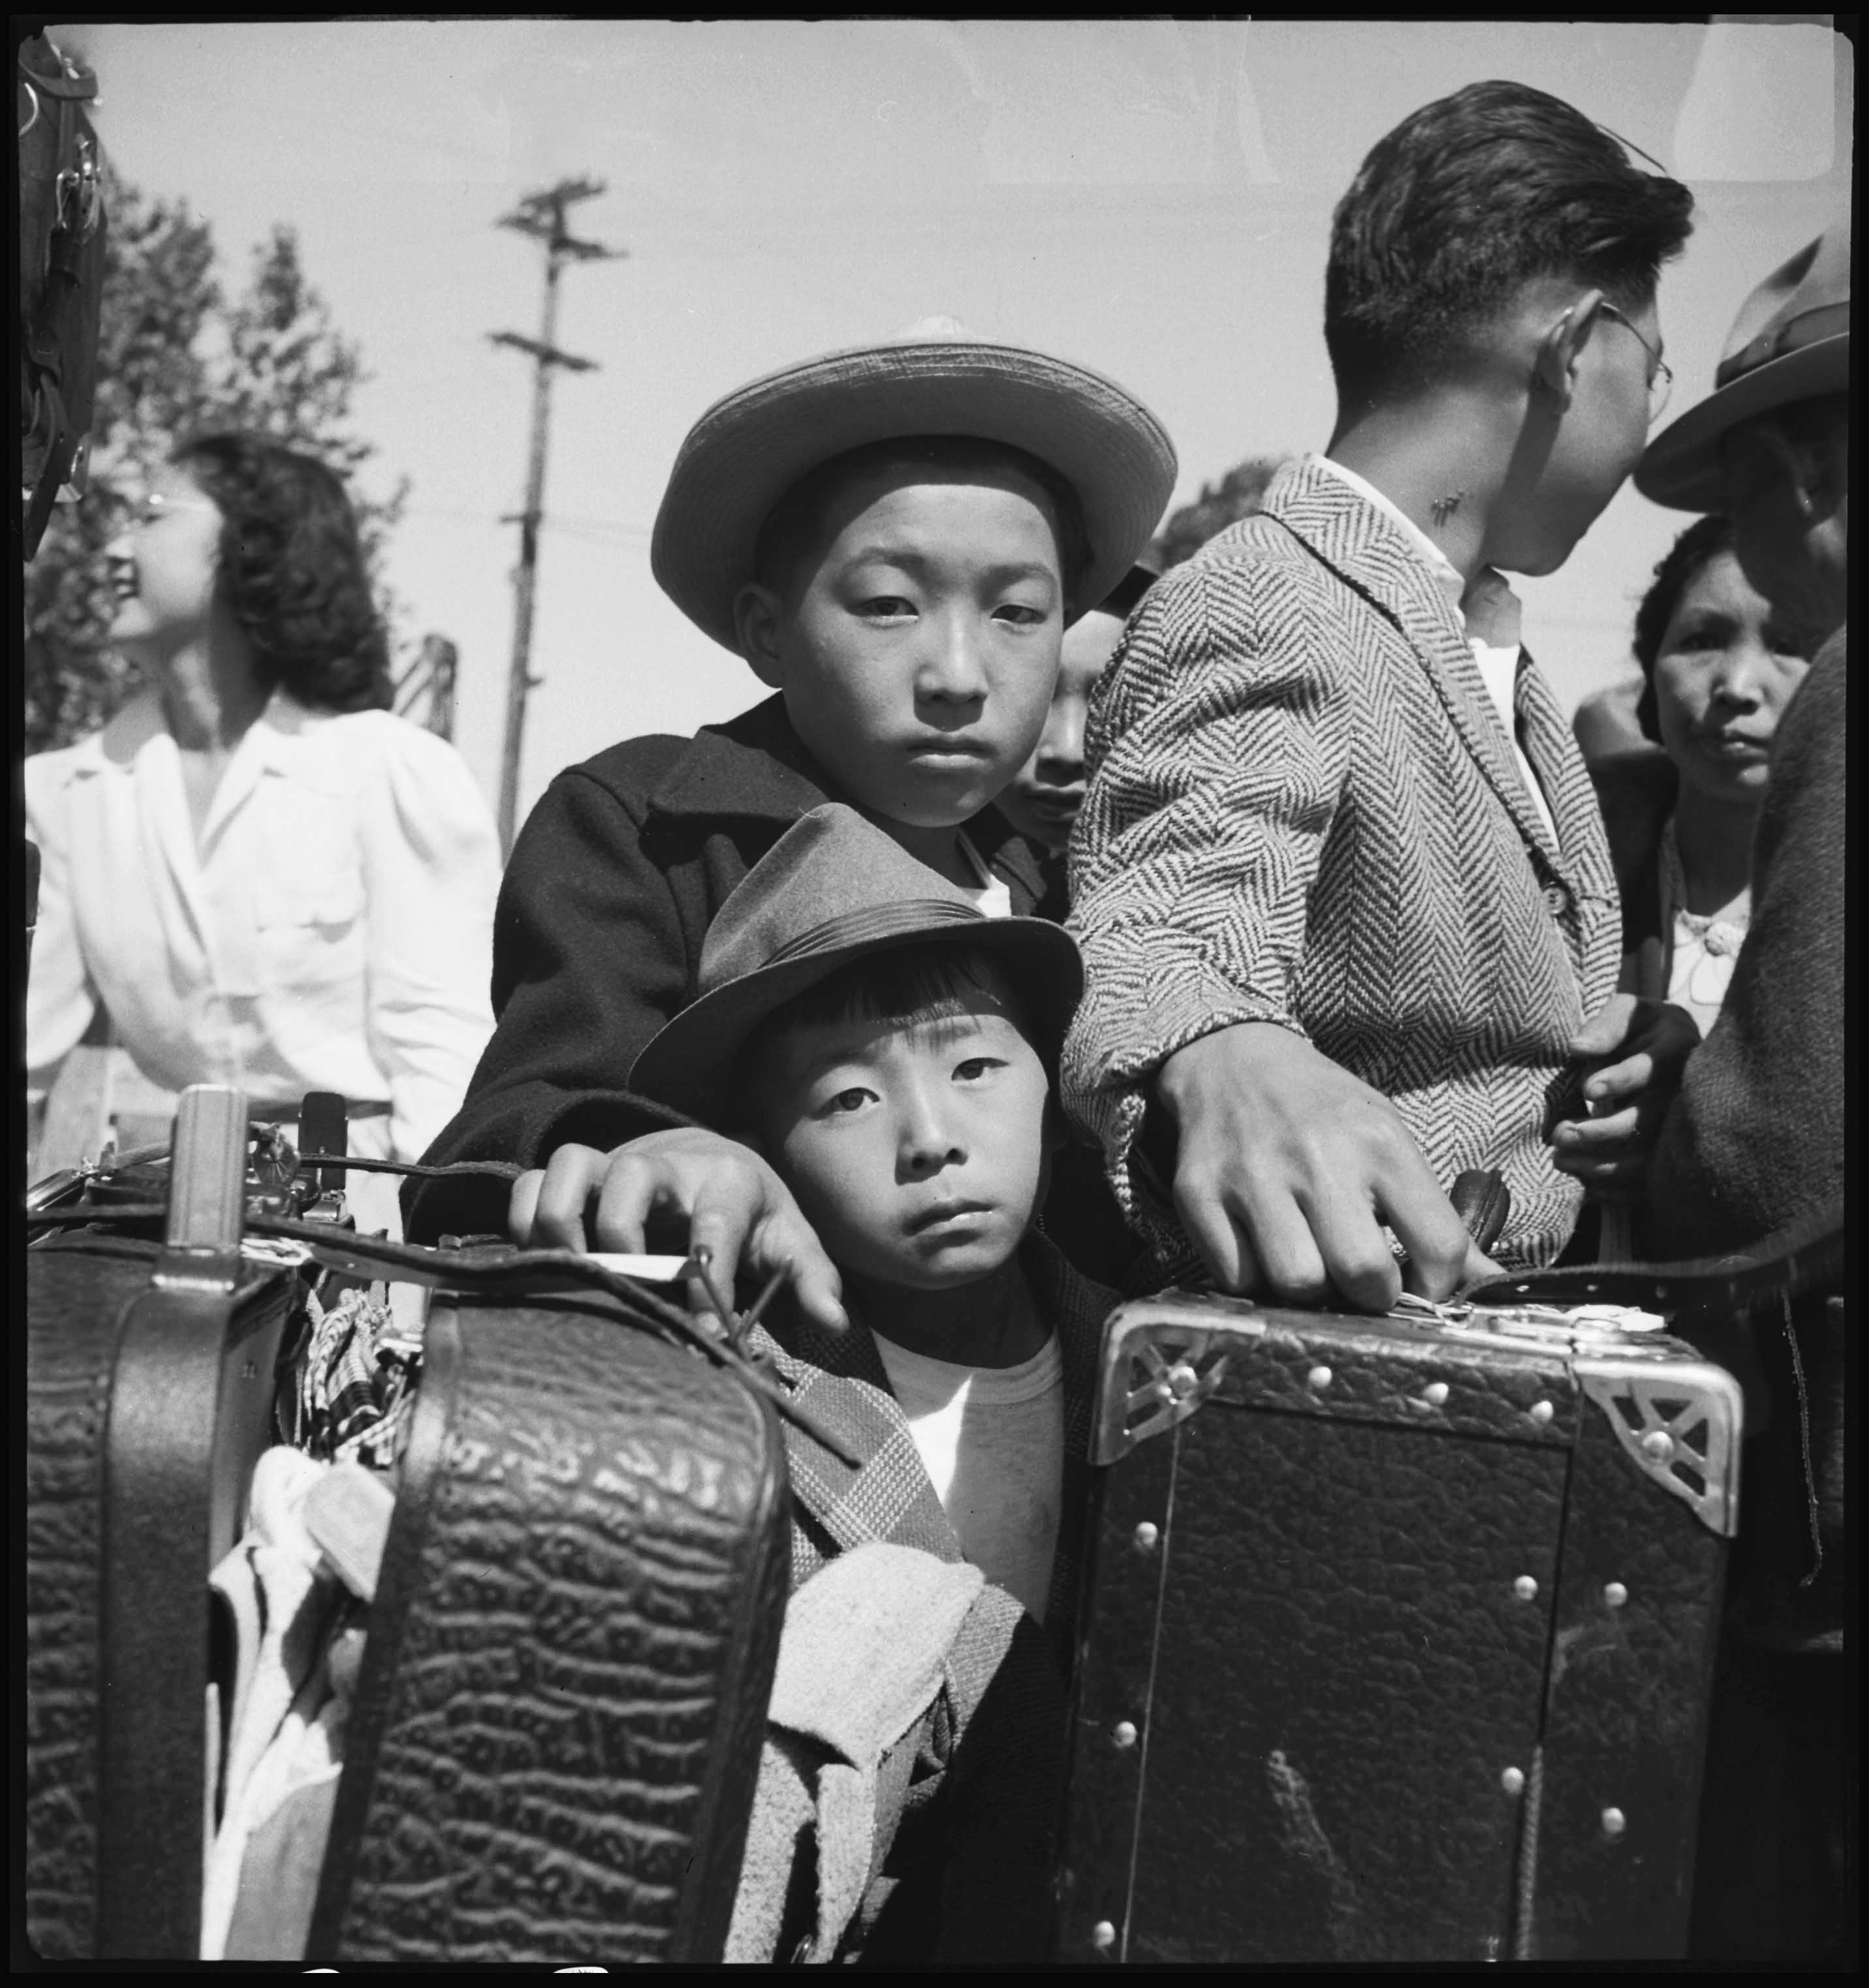 Japanese Americans being removed from Turlock, California, May 2, 1942